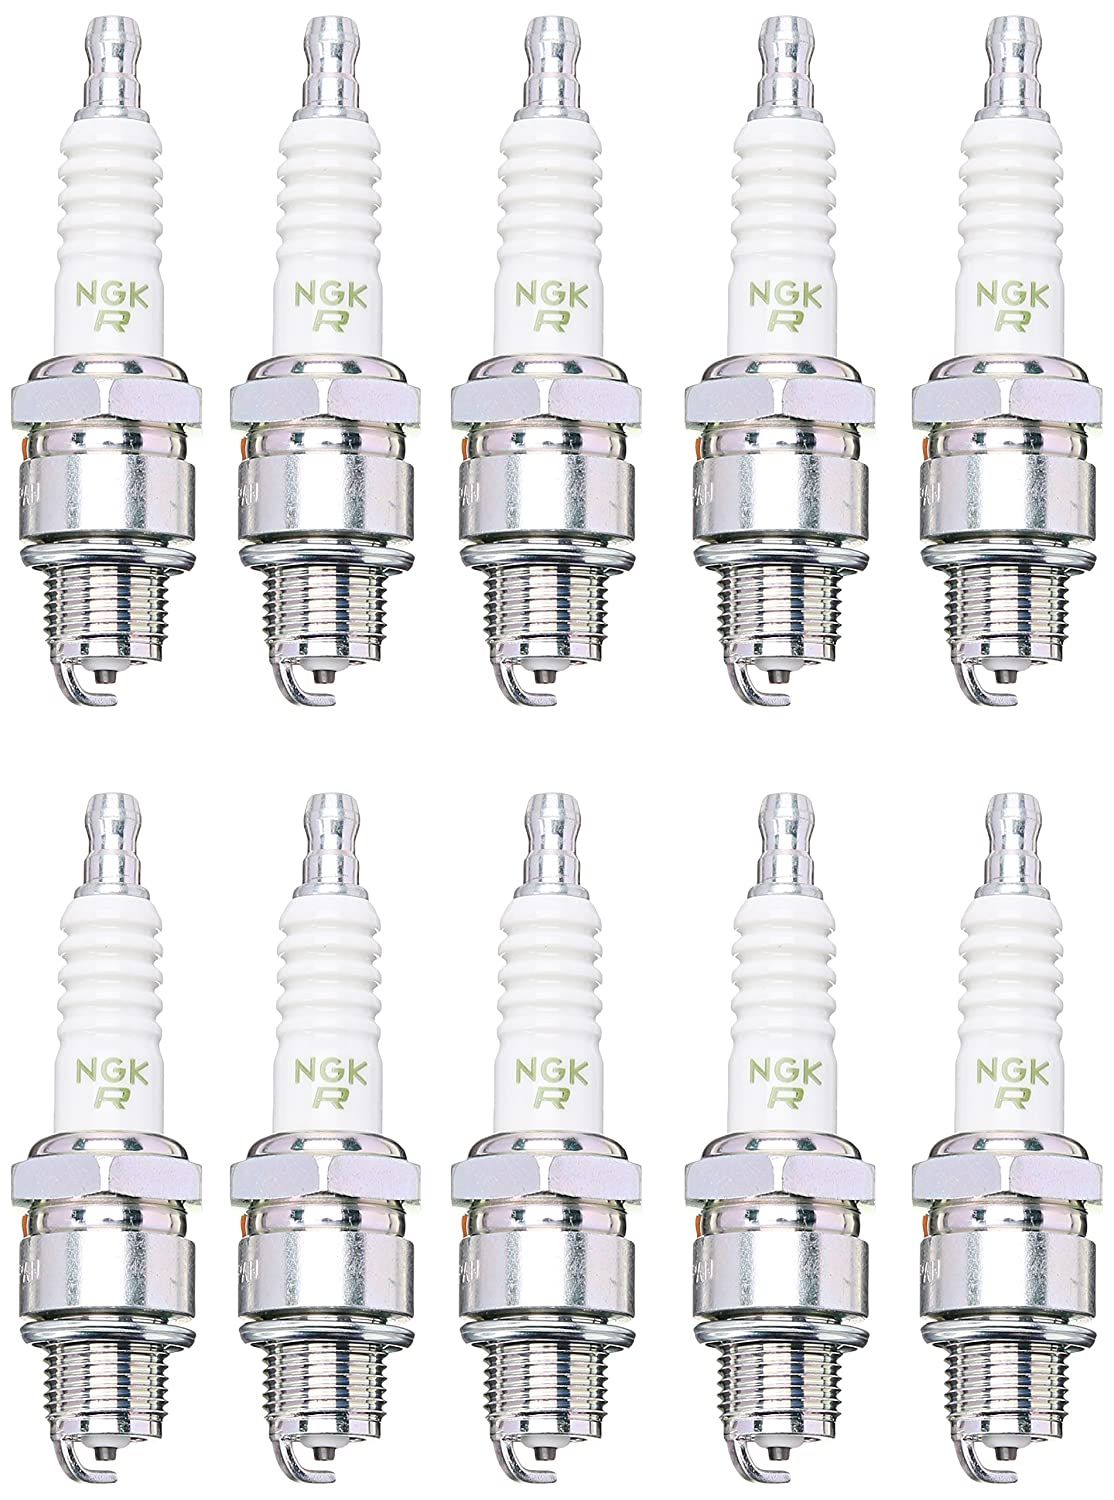 Amazon.com: NGK (4495) BPZ8H-N10 Standard Spark Plug, Pack of 1: Automotive